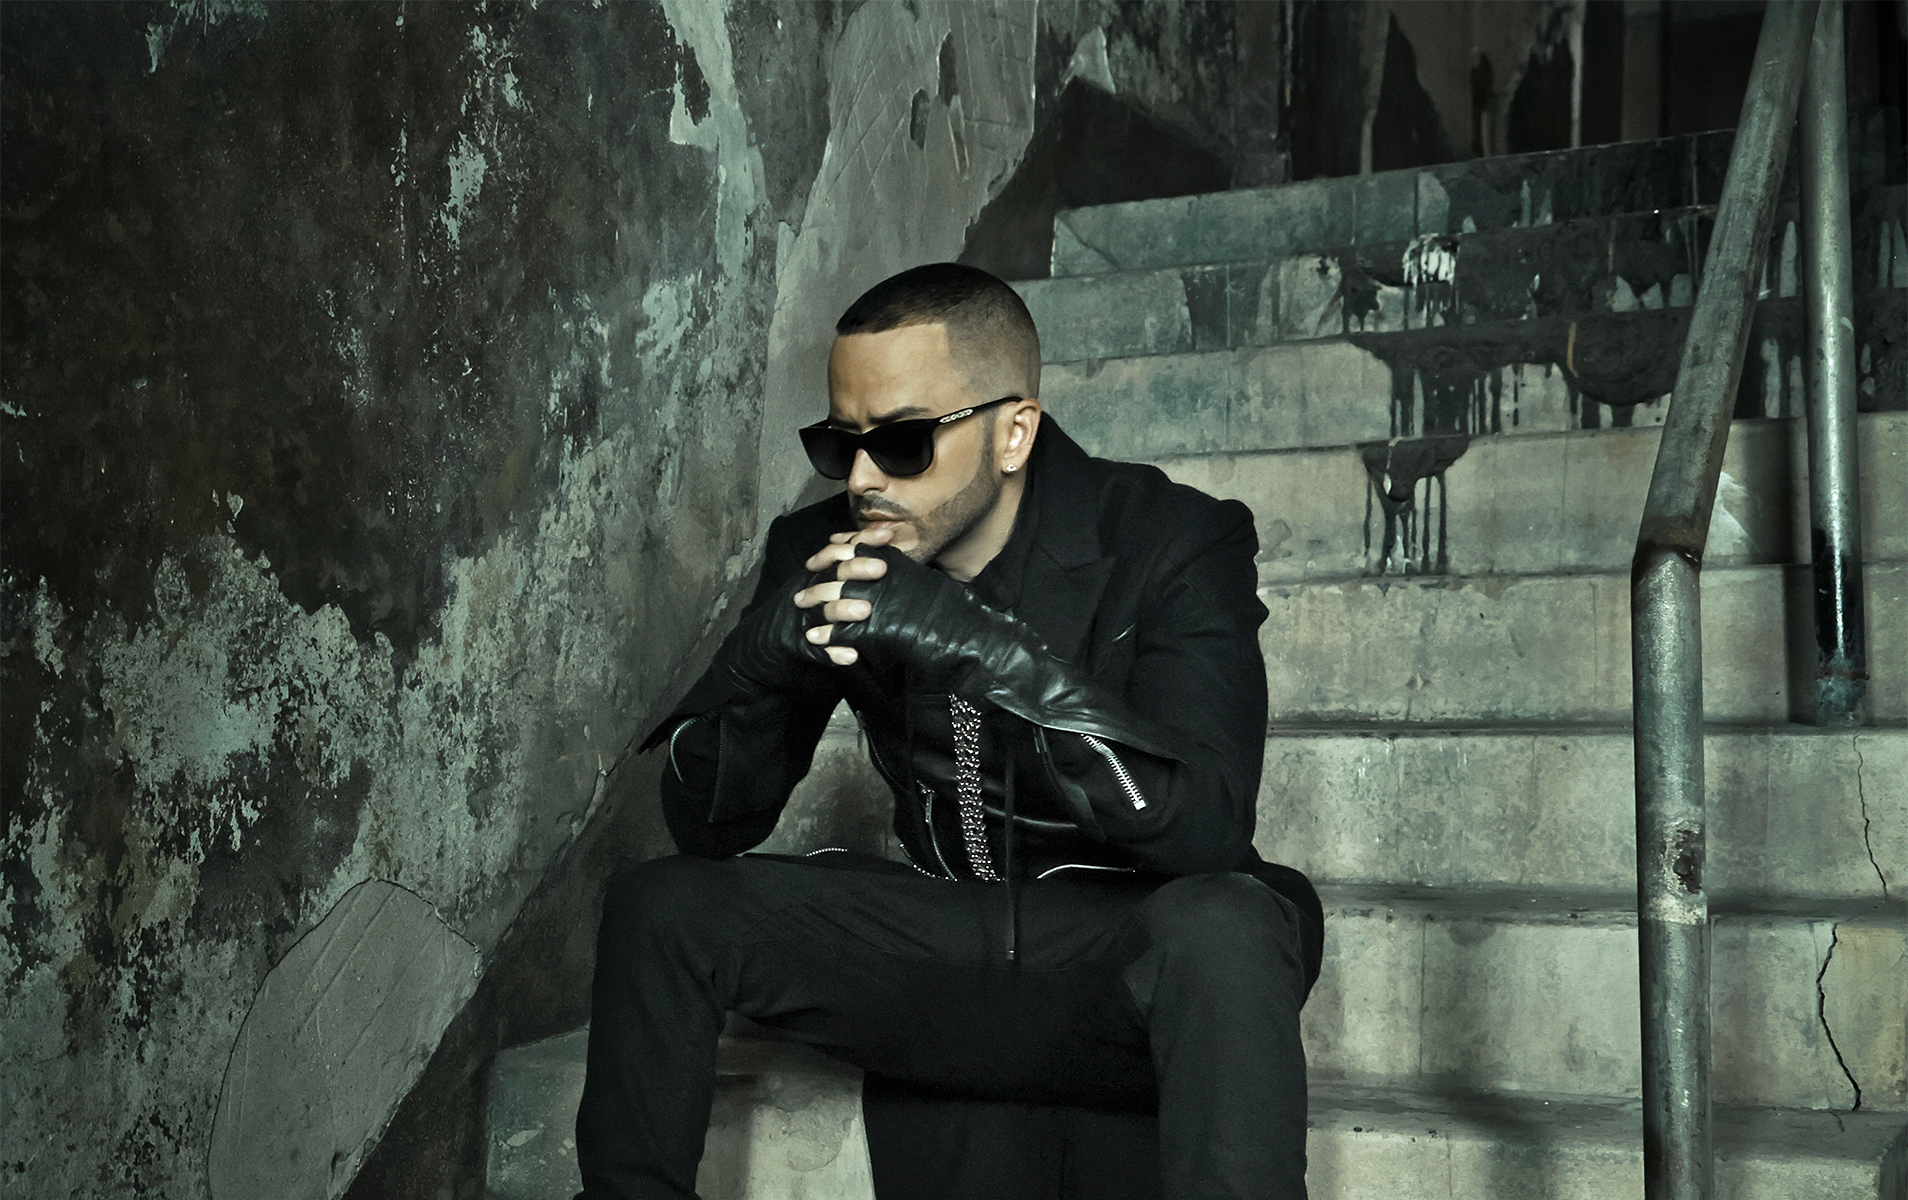 From Young Thug to Ariana Grande: 15 Songs Yandel Listens to On the Road